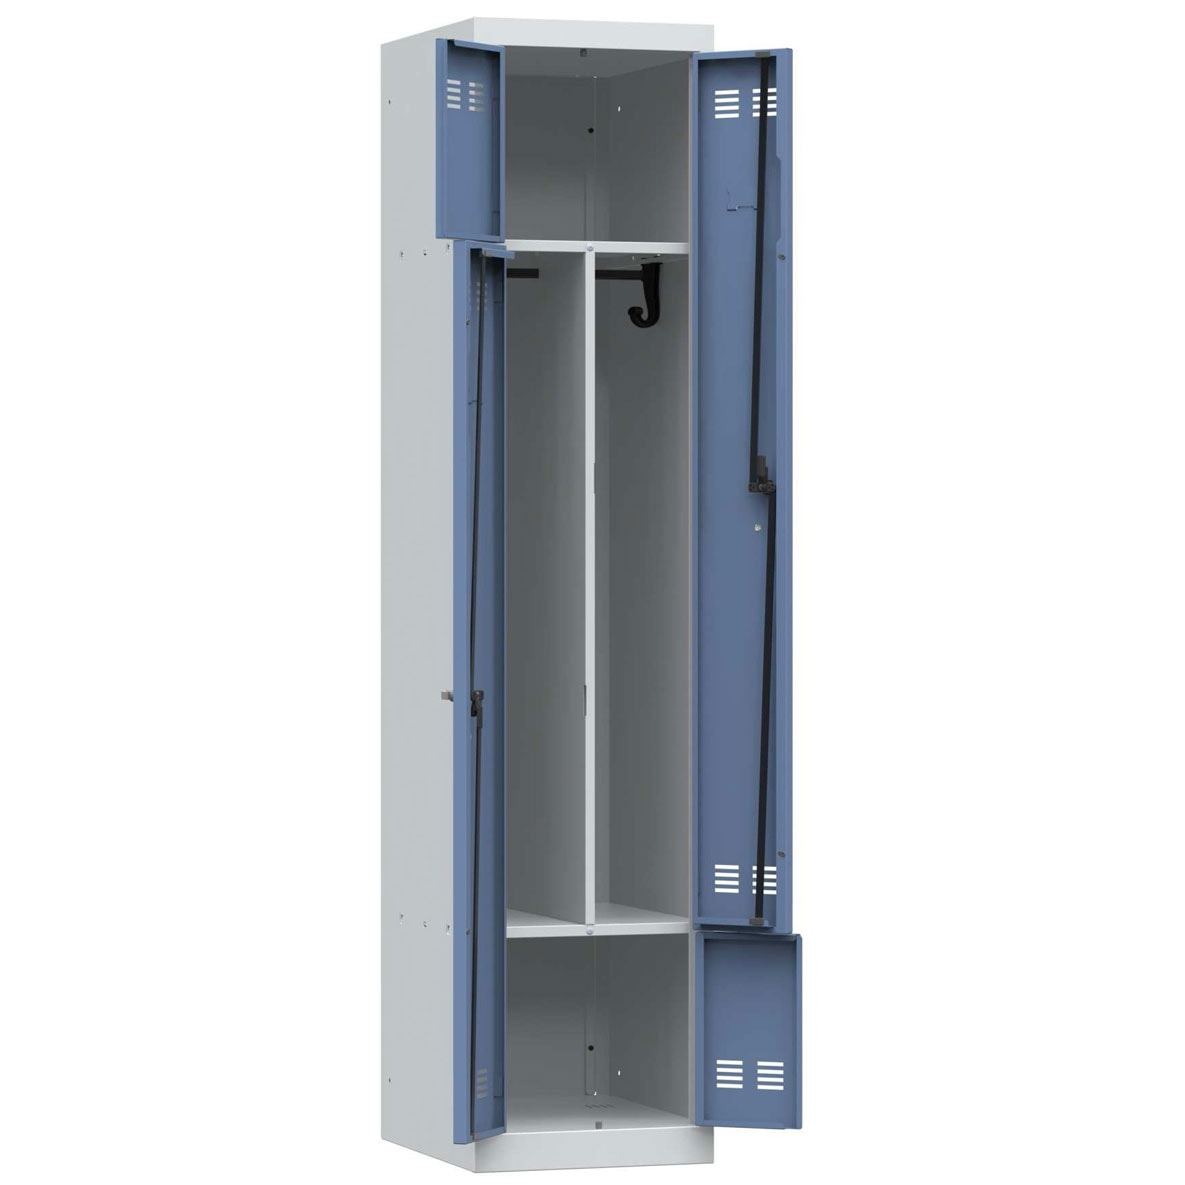 Vestiaires portes l 2 cases armoire plus for Armoire metallique 2 portes